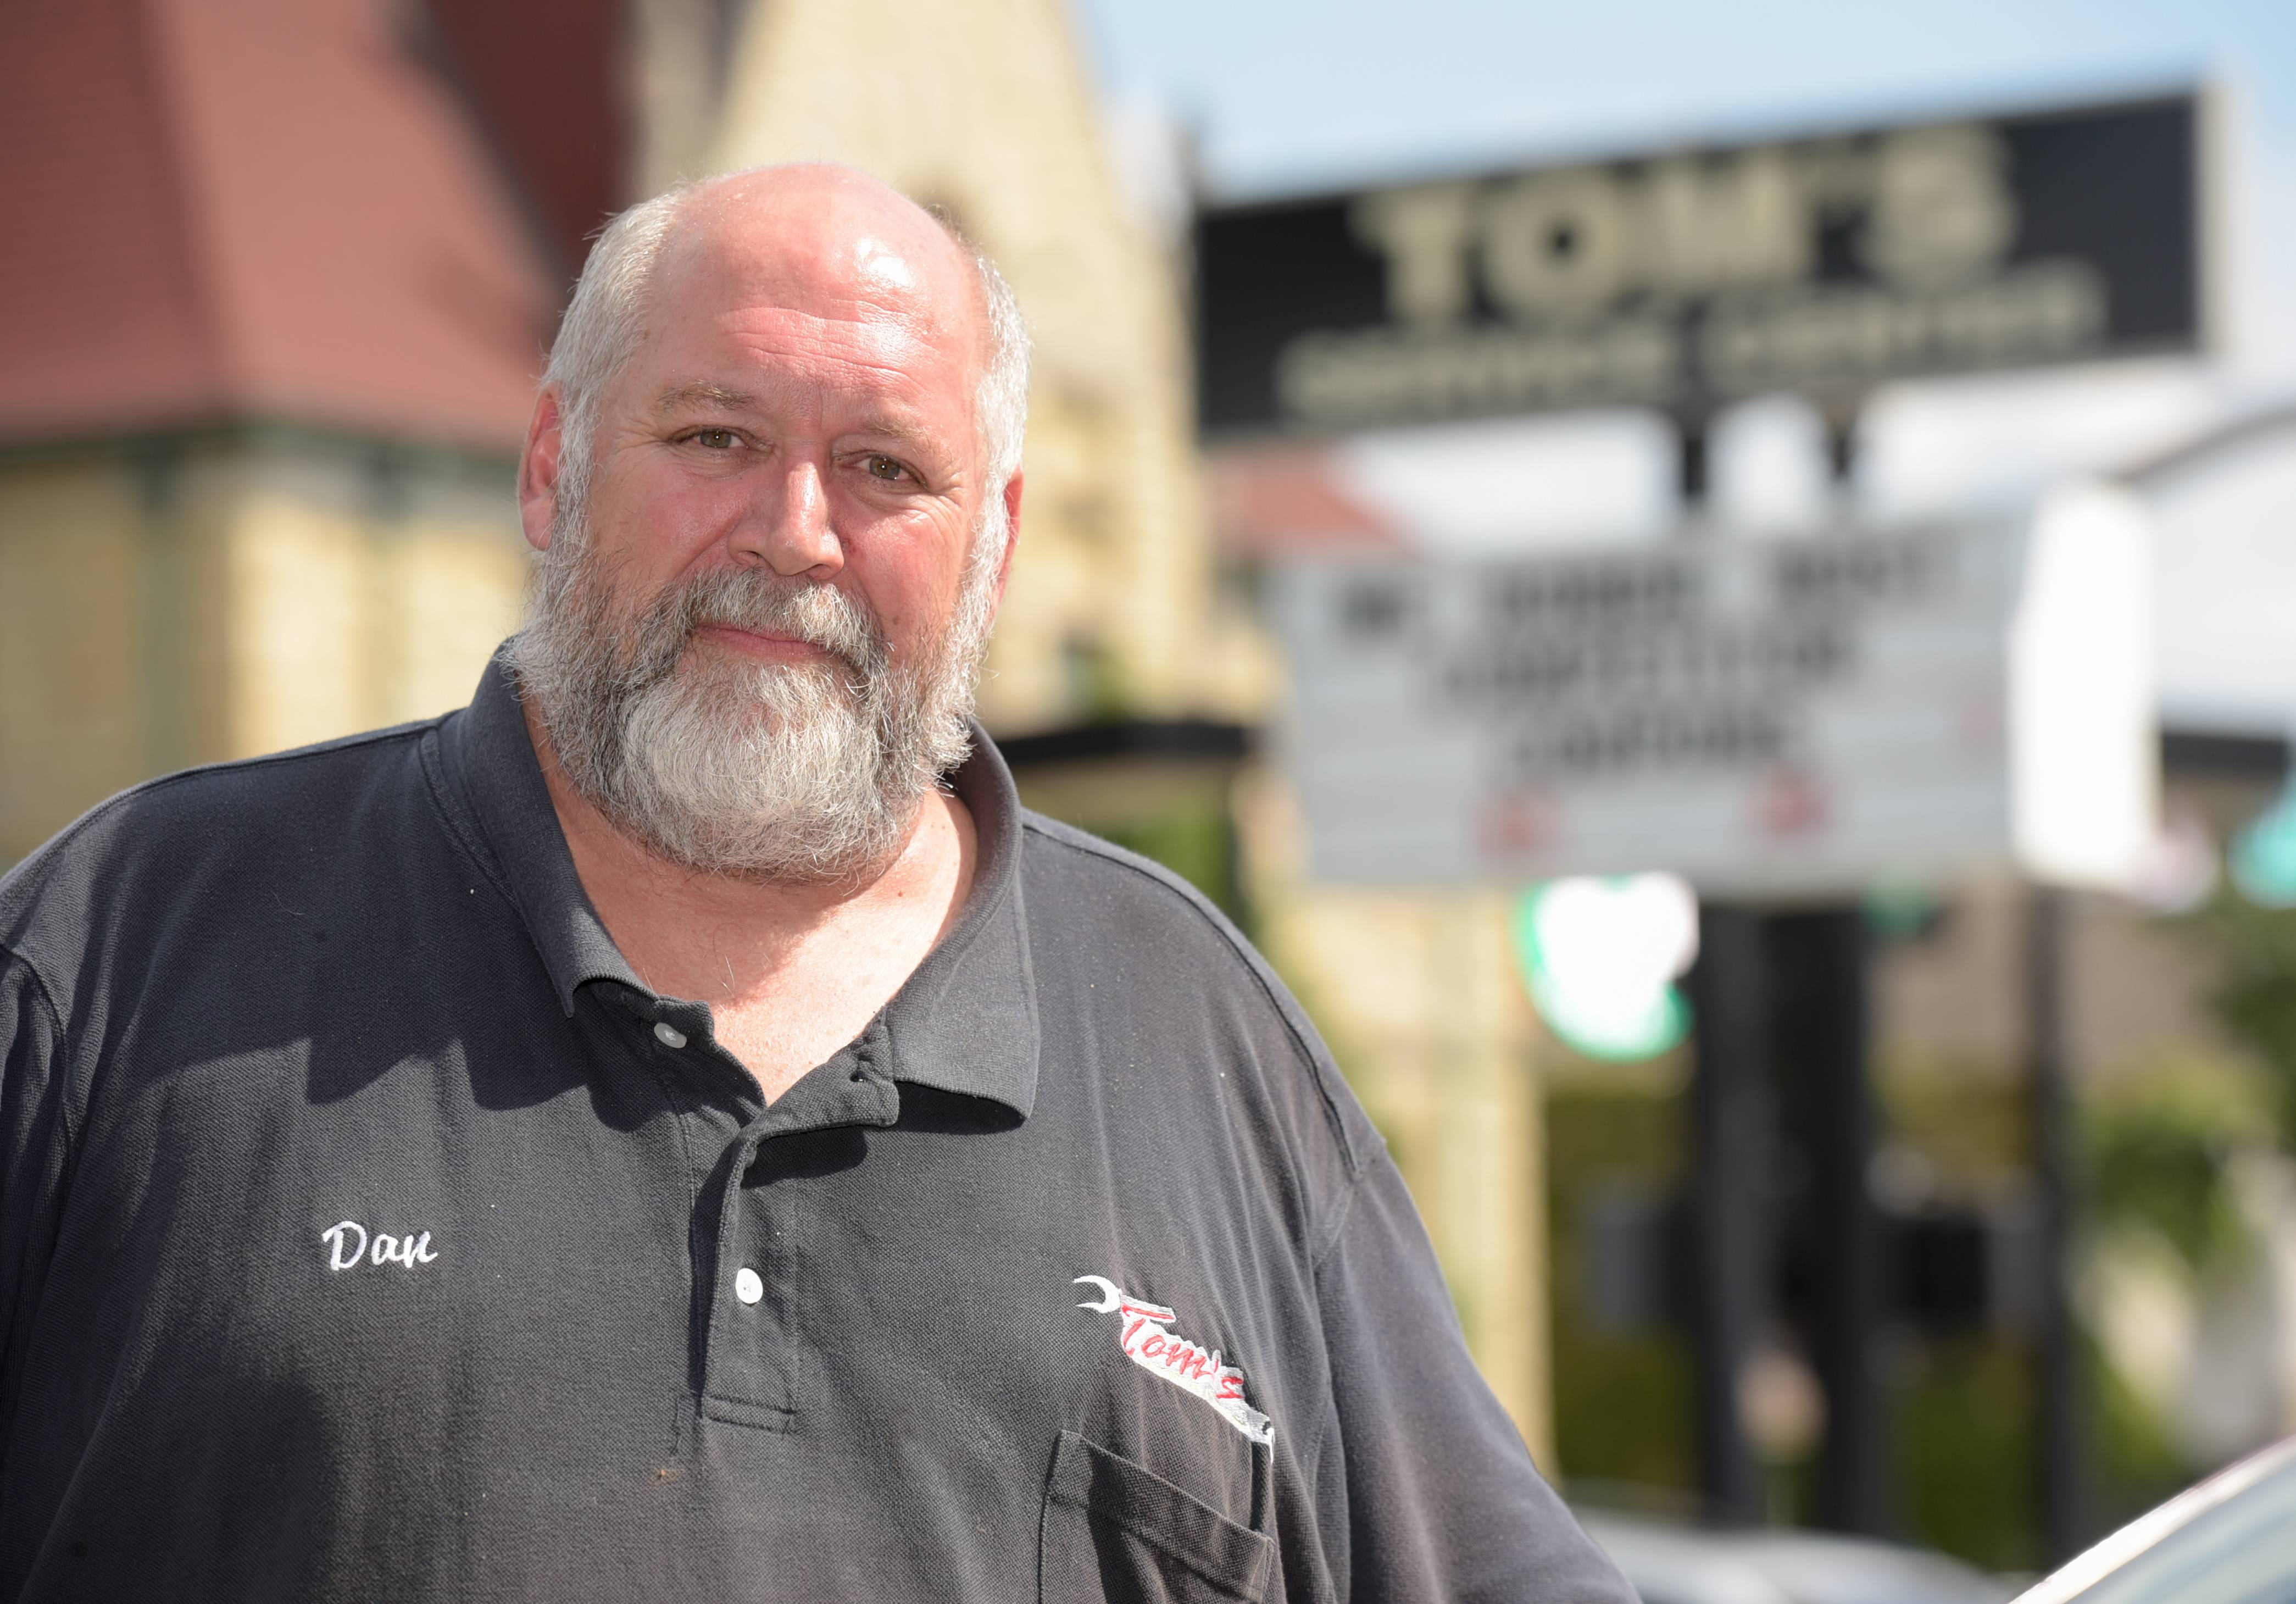 Dan Kullman, owner of Tom's Service Station, a fixture in downtown Wheaton for almost 50 years, will close Aug. 23.